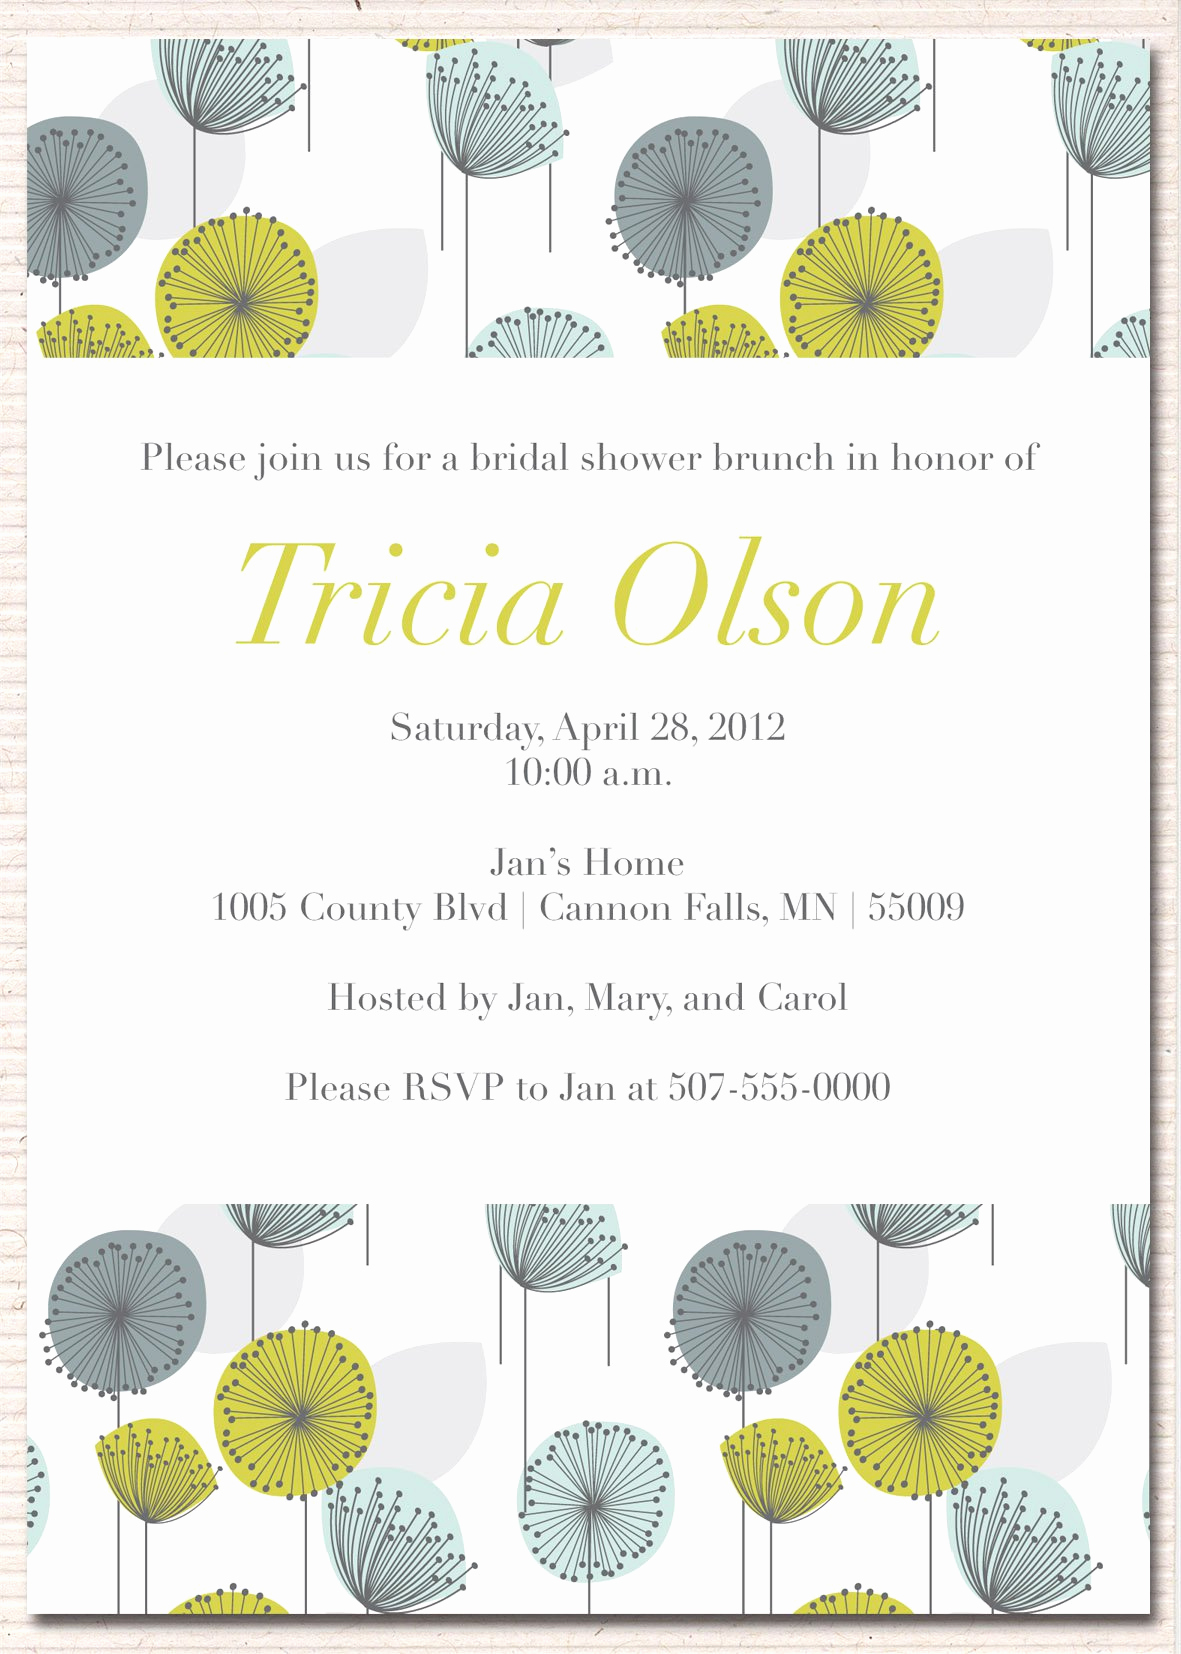 Bridal Shower Brunch Invitation Unique Wedding Invitation Sample Wedding Invitation Card New